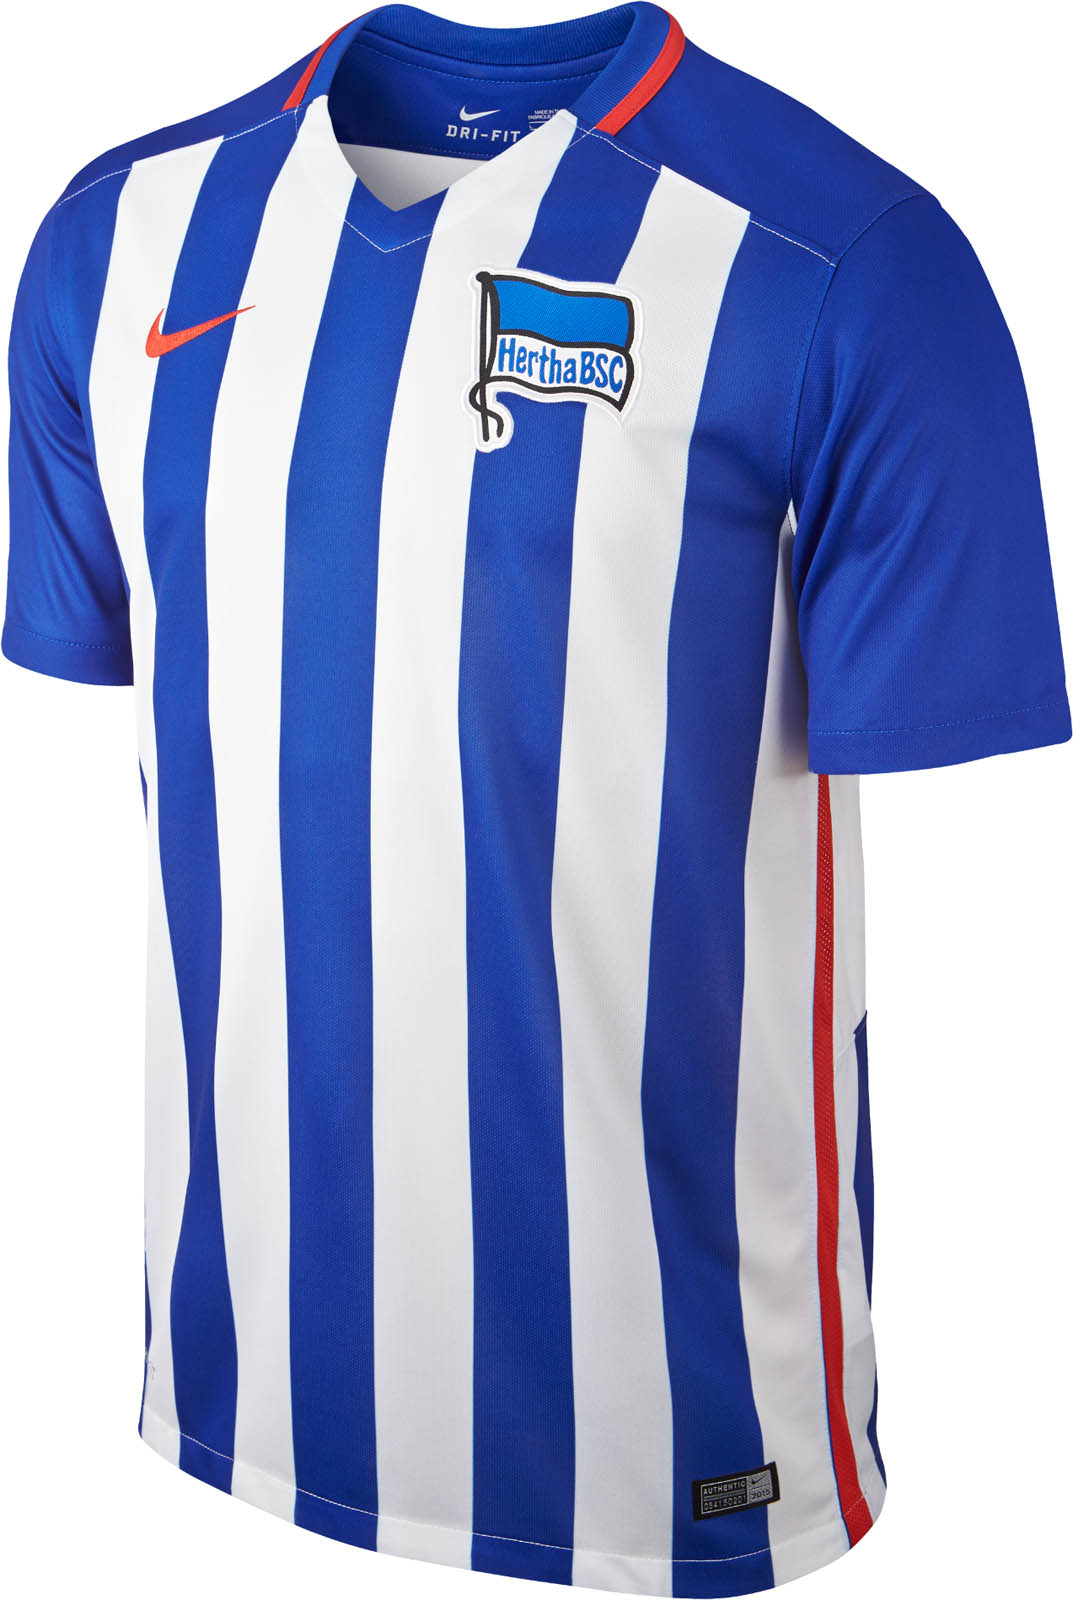 Hertha Berlin Trikot